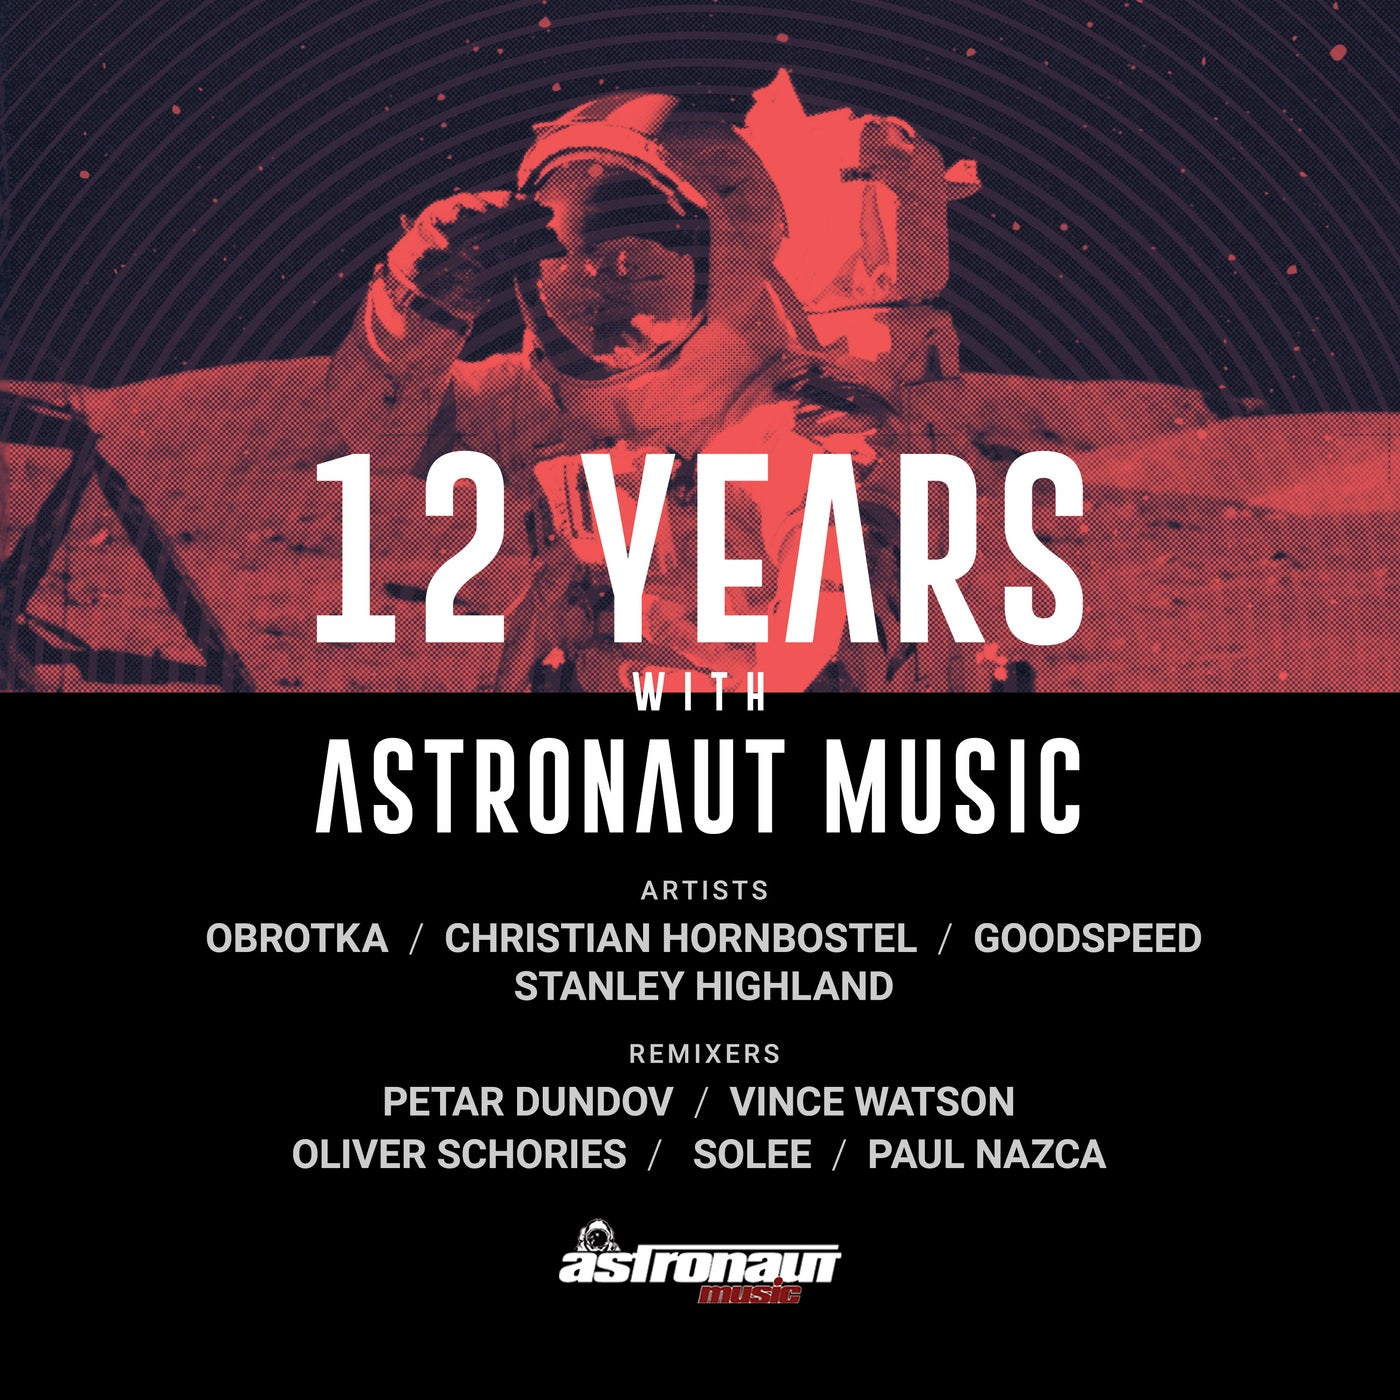 Download 12 Years with Astronaut Music on Electrobuzz